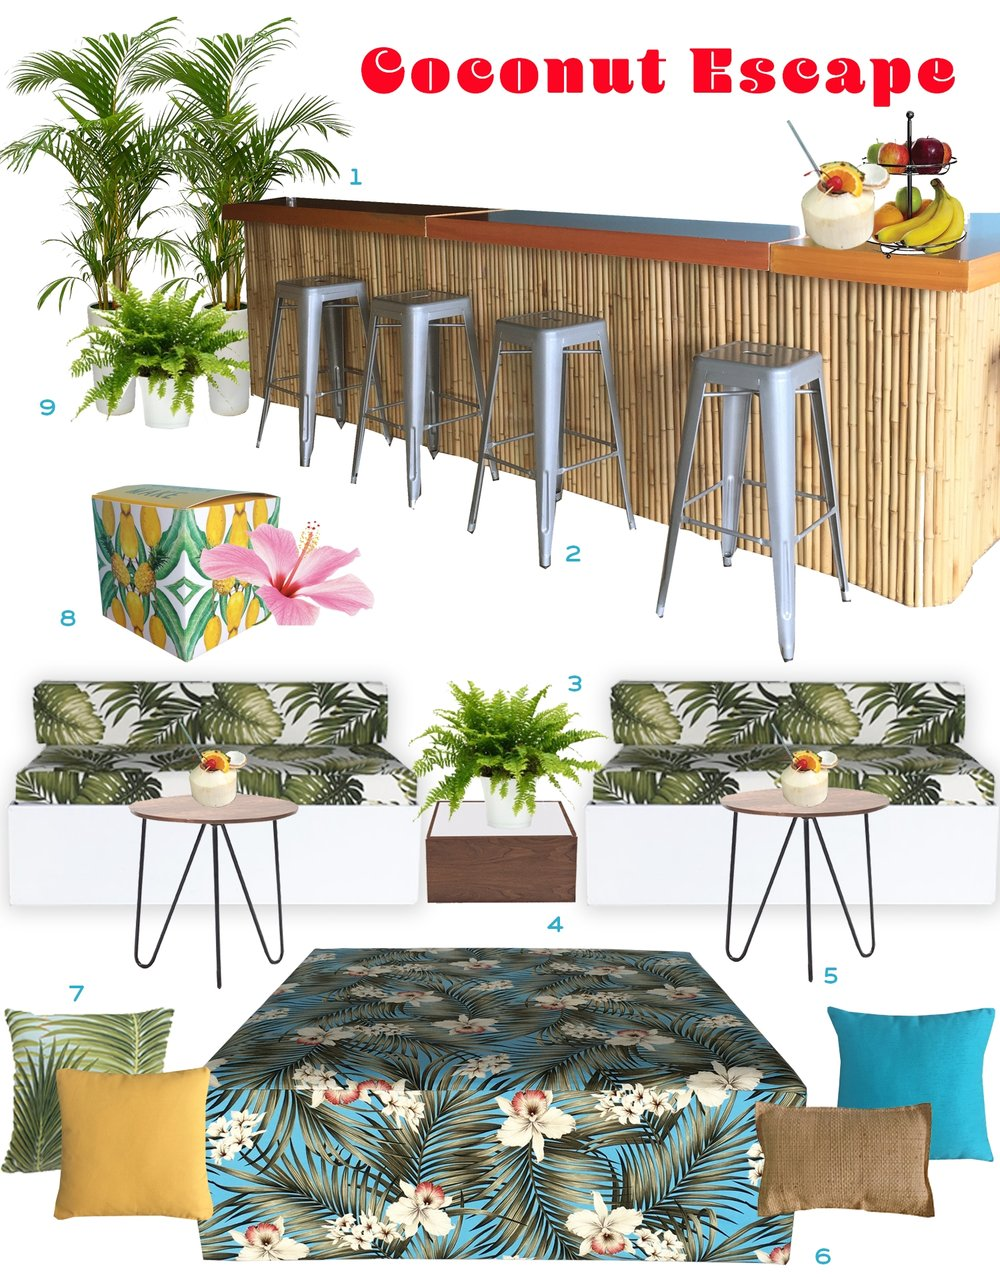 Ronen Rental - Coconut escape - Rent the look furniture